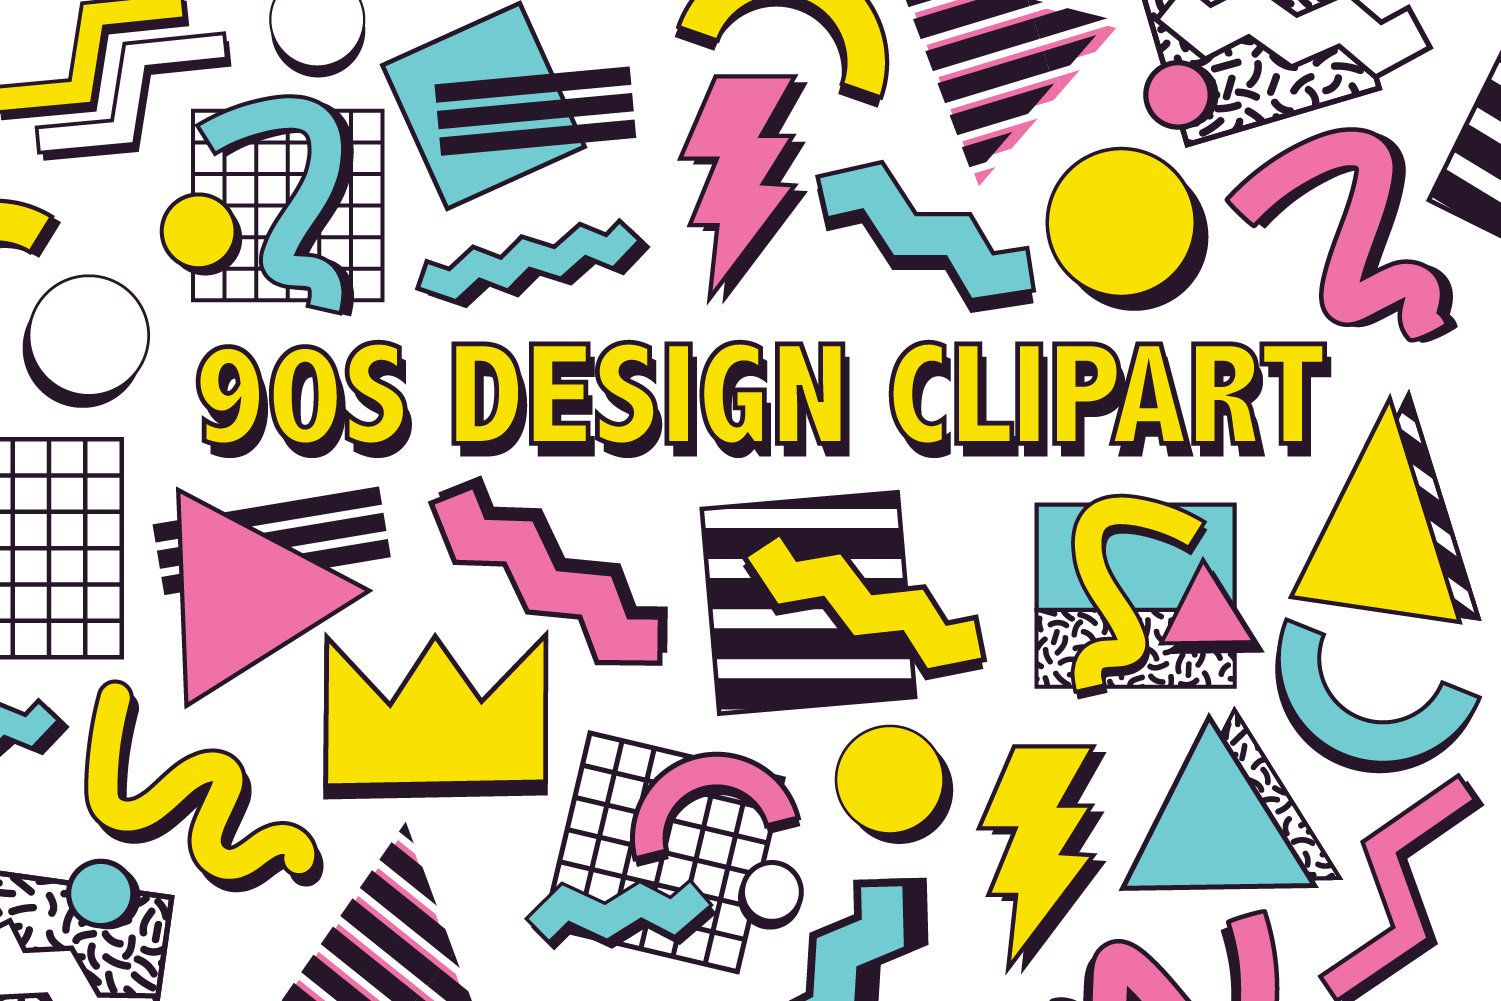 90 S Design Clipart Retro 90s Graphic Design Element Etsy 90s Graphic Design Graphic Design Pattern Digital Graphic Design